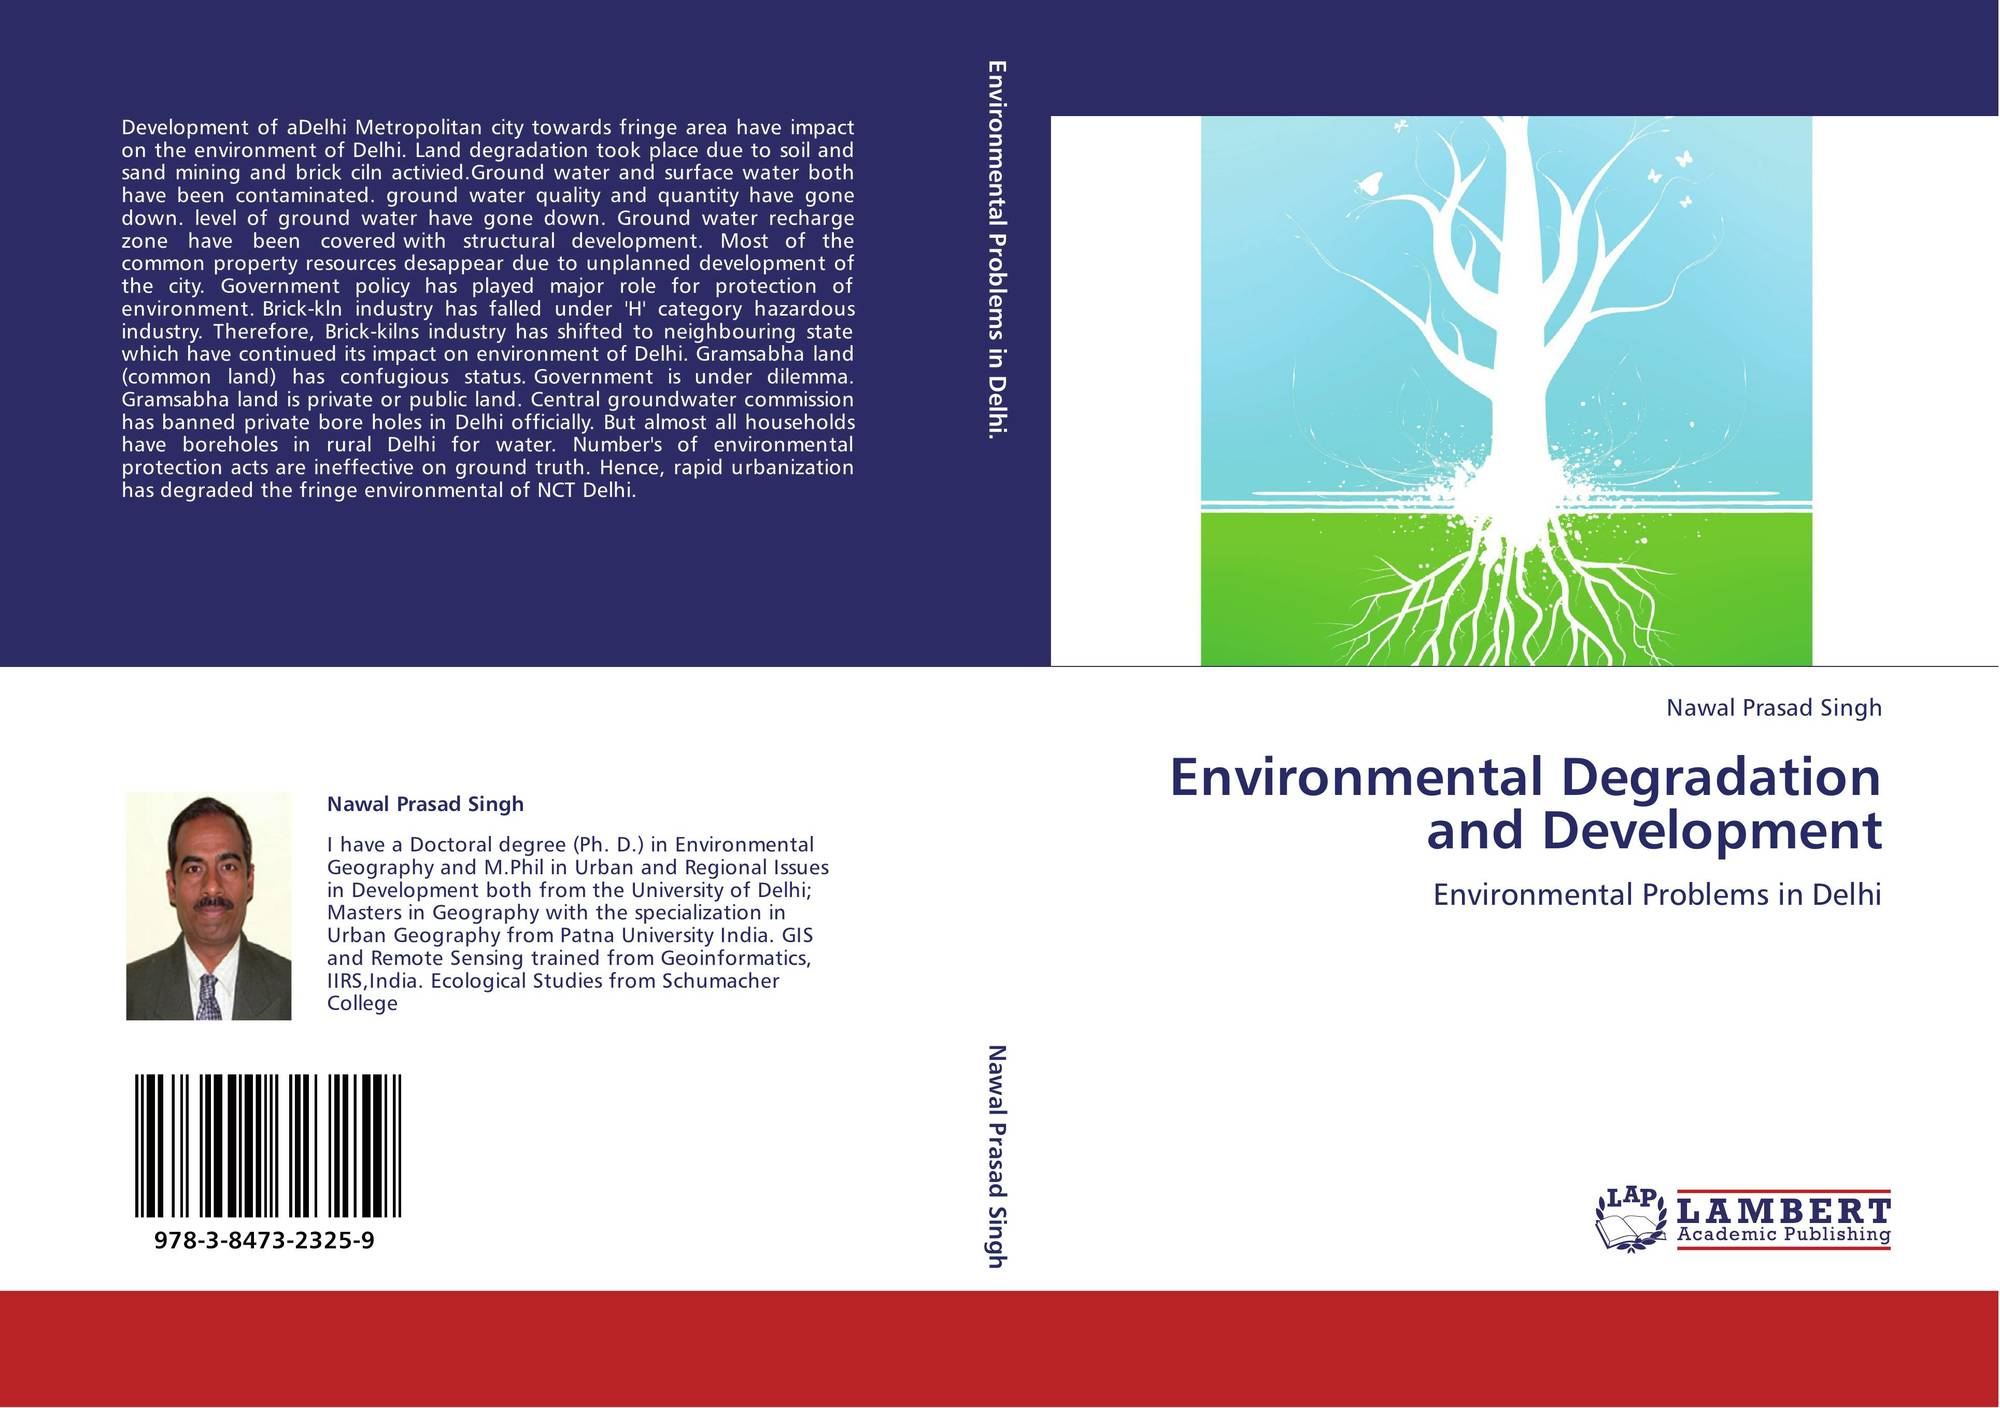 modernization and environmental degradation essays Environmental degradation and modernization essays and term papers available at echeatcom, the largest free essay community.